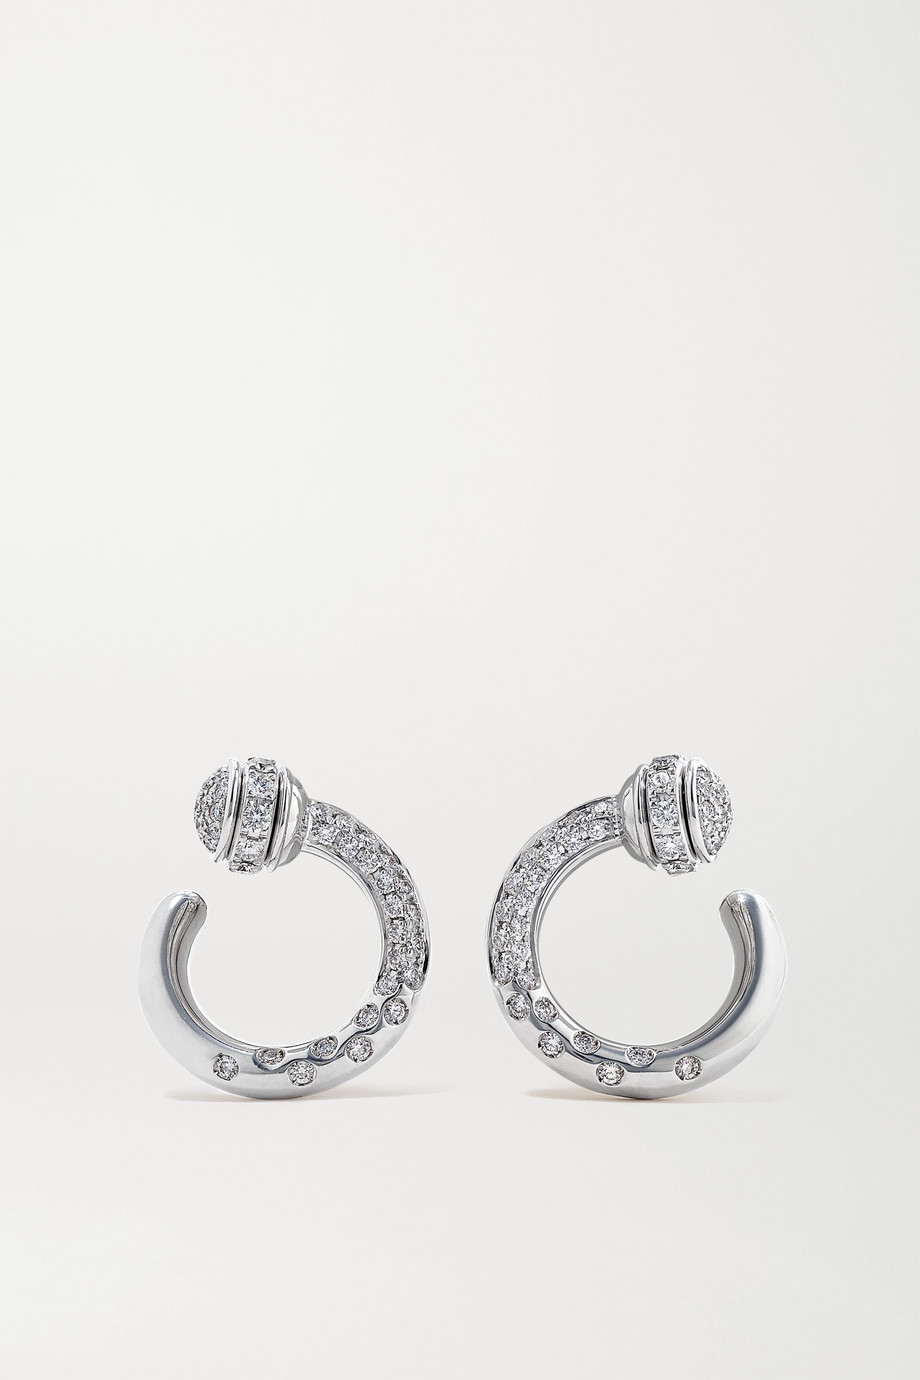 Piaget Possession 18-karat white gold diamond earrings